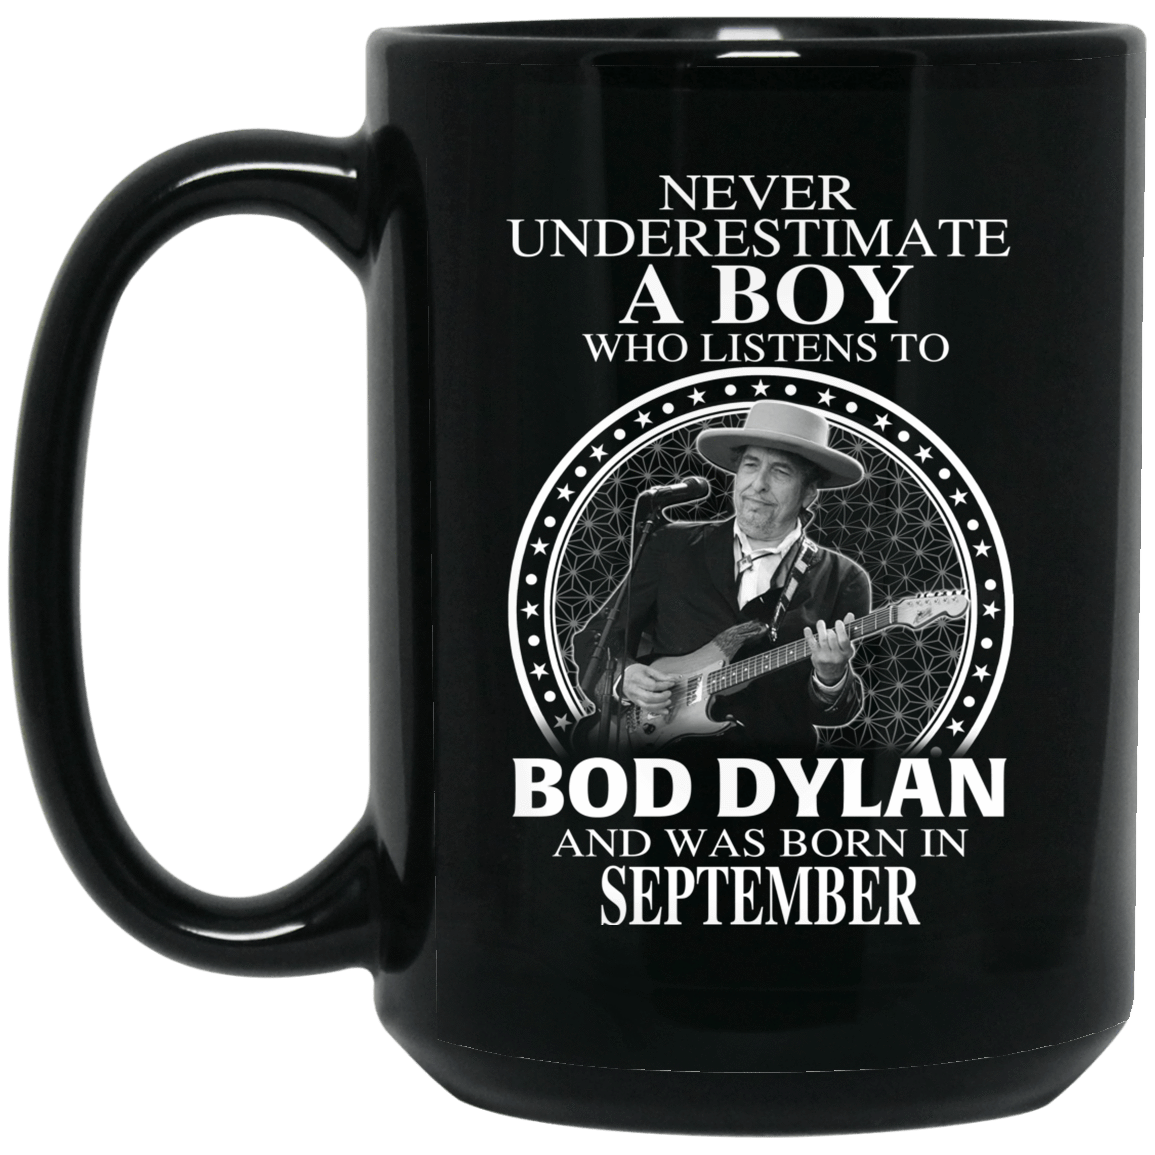 A Boy Who Listens To Bob Dylan And Was Born In September Mug 1066-10182-76153781-49311 - Tee Ript